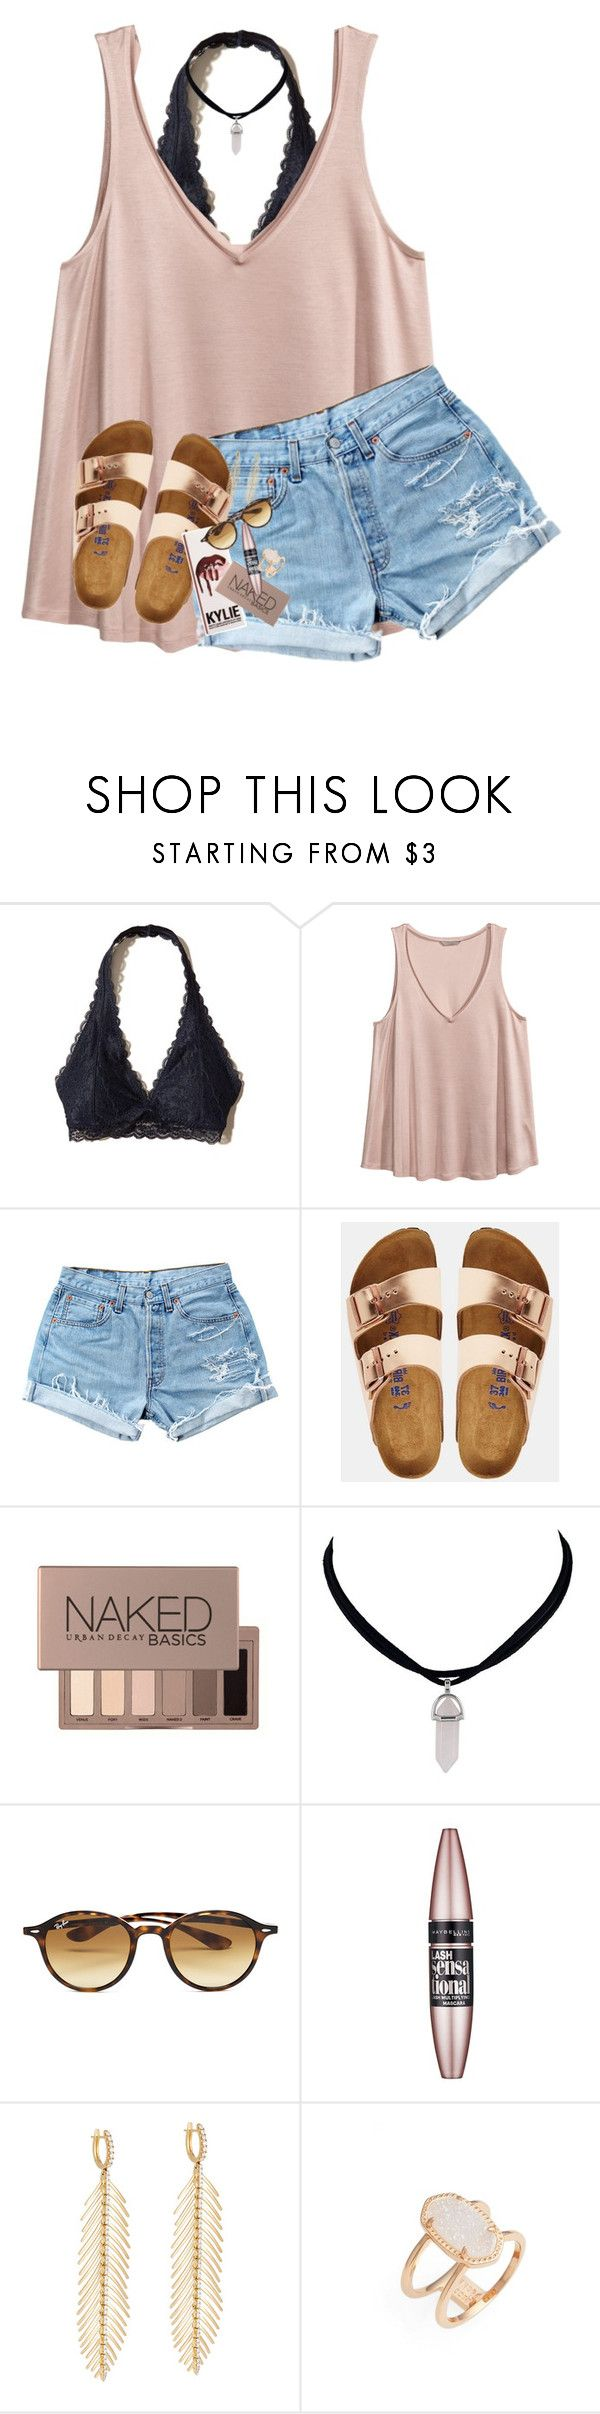 """i'm still standing better than i ever did"" by lindsaygreys ❤ liked on Polyvore featuring Hollister Co., H&M, Levi's, Birkenstock, Urban Decay, Ray-Ban, Maybelline, Sidney Garber and Kendra Scott"